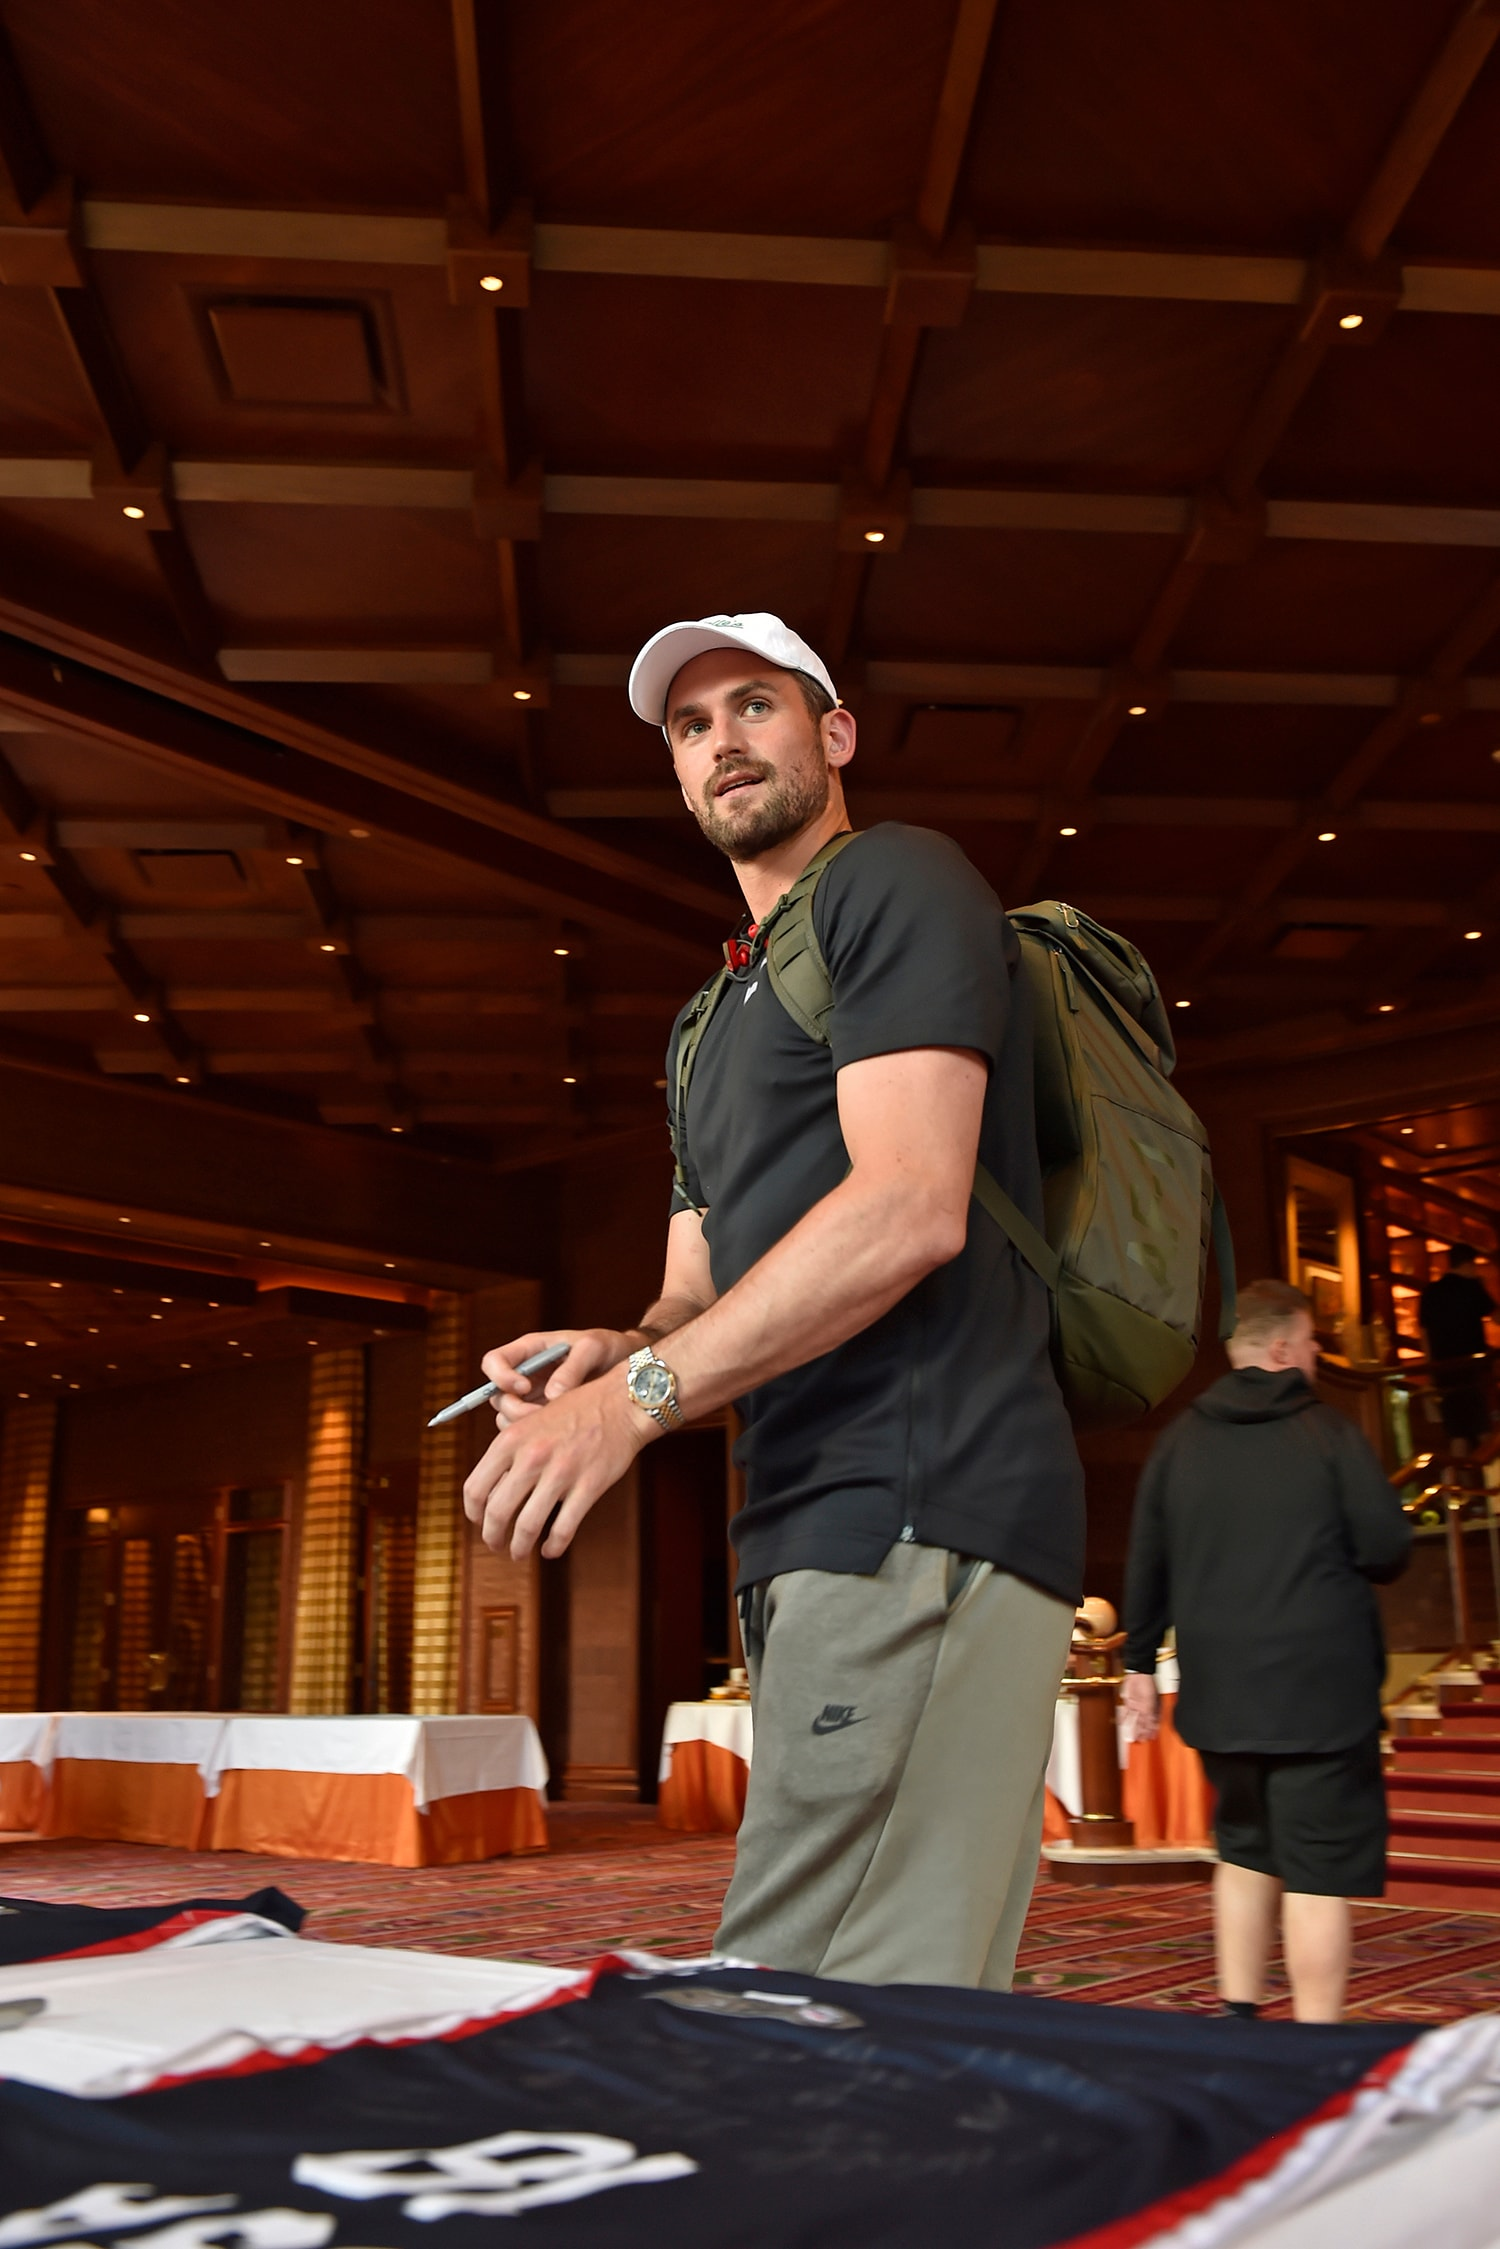 LAS VEGAS, NV - JULY 25: Kevin Love looks arrives at USAB Minicamp in Las Vegas, Nevada at the Wynn Las Vegas on July 25, 2018. (David Becker/NBAE via Getty Images)